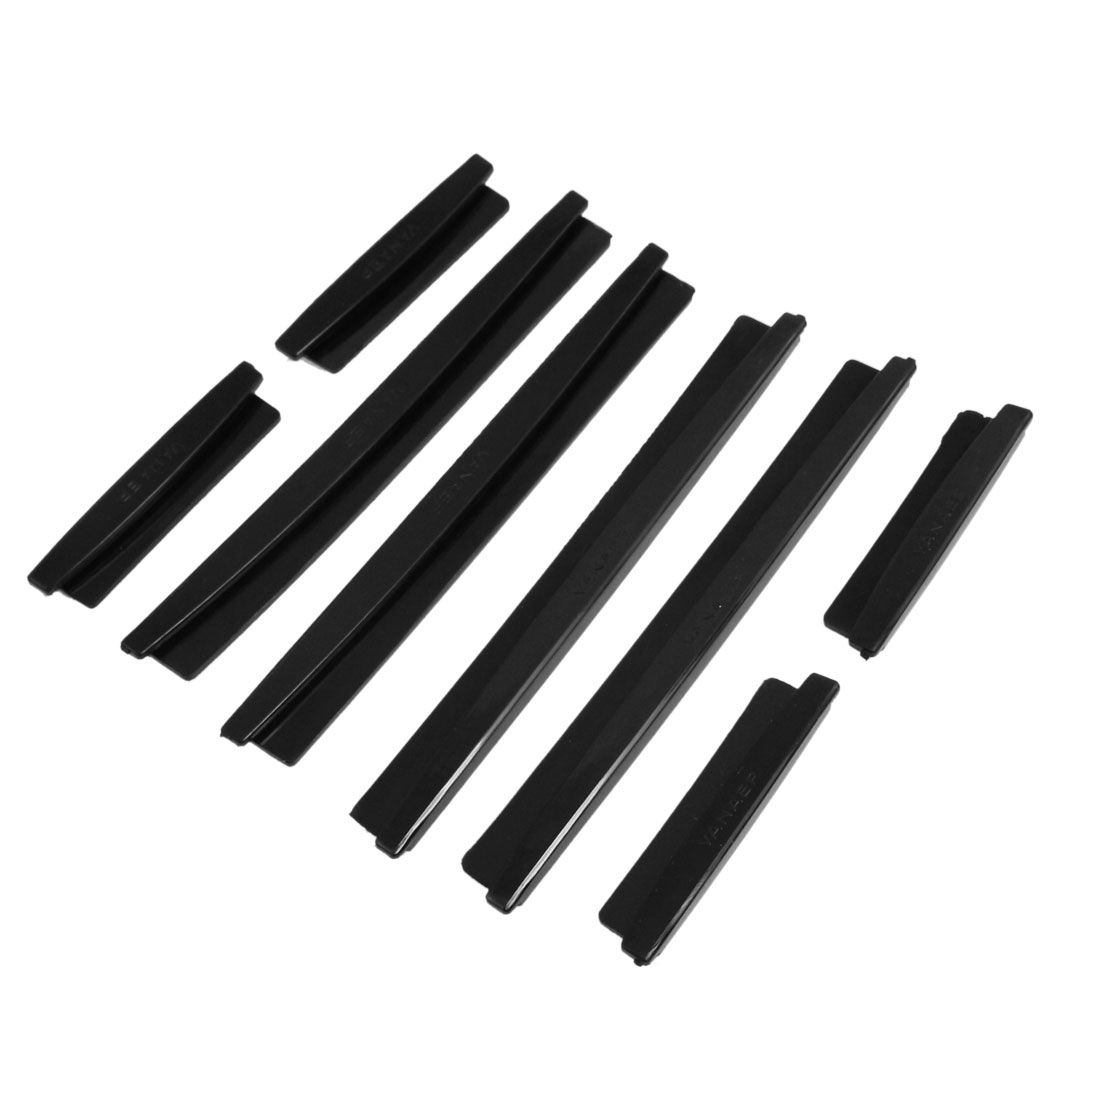 8 Pcs Car Black Soft Plastic Adhesive Bumper Guard Bar Decor